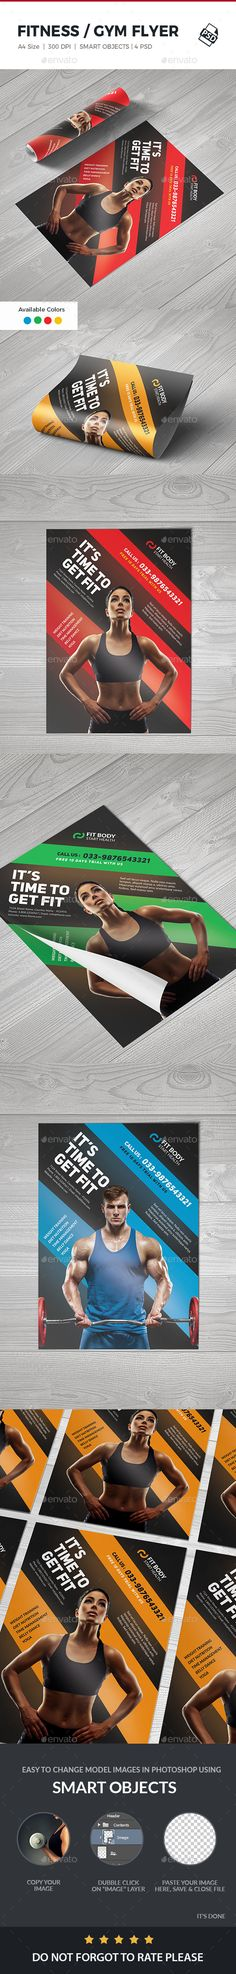 #Fitness #Flyer - #Sports Events Download here: https://graphicriver.net/item/fitness-flyer/19014044?ref=alena994